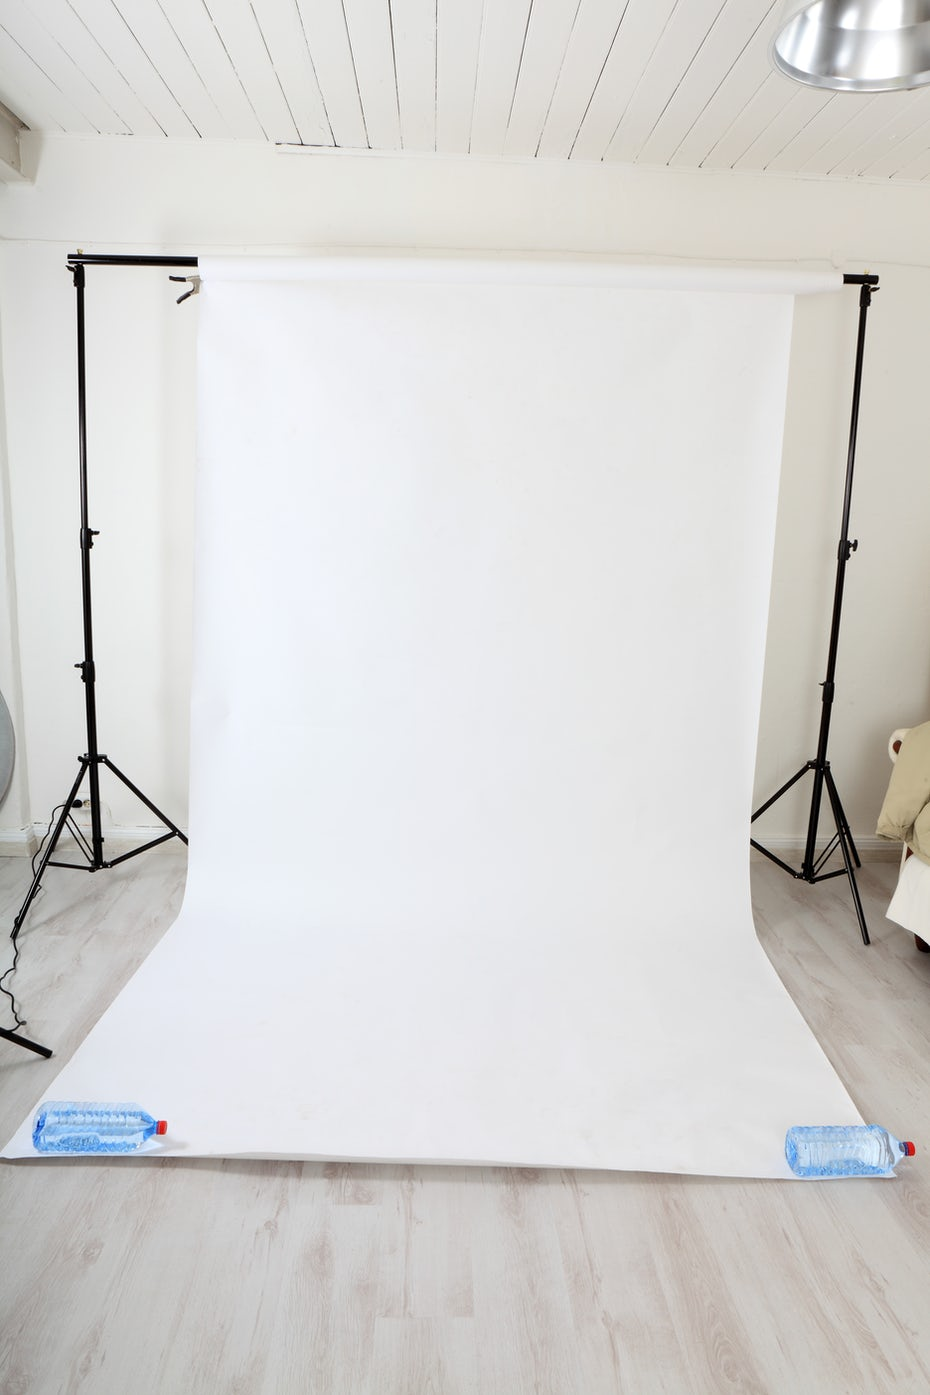 How to get professional product photography on a small